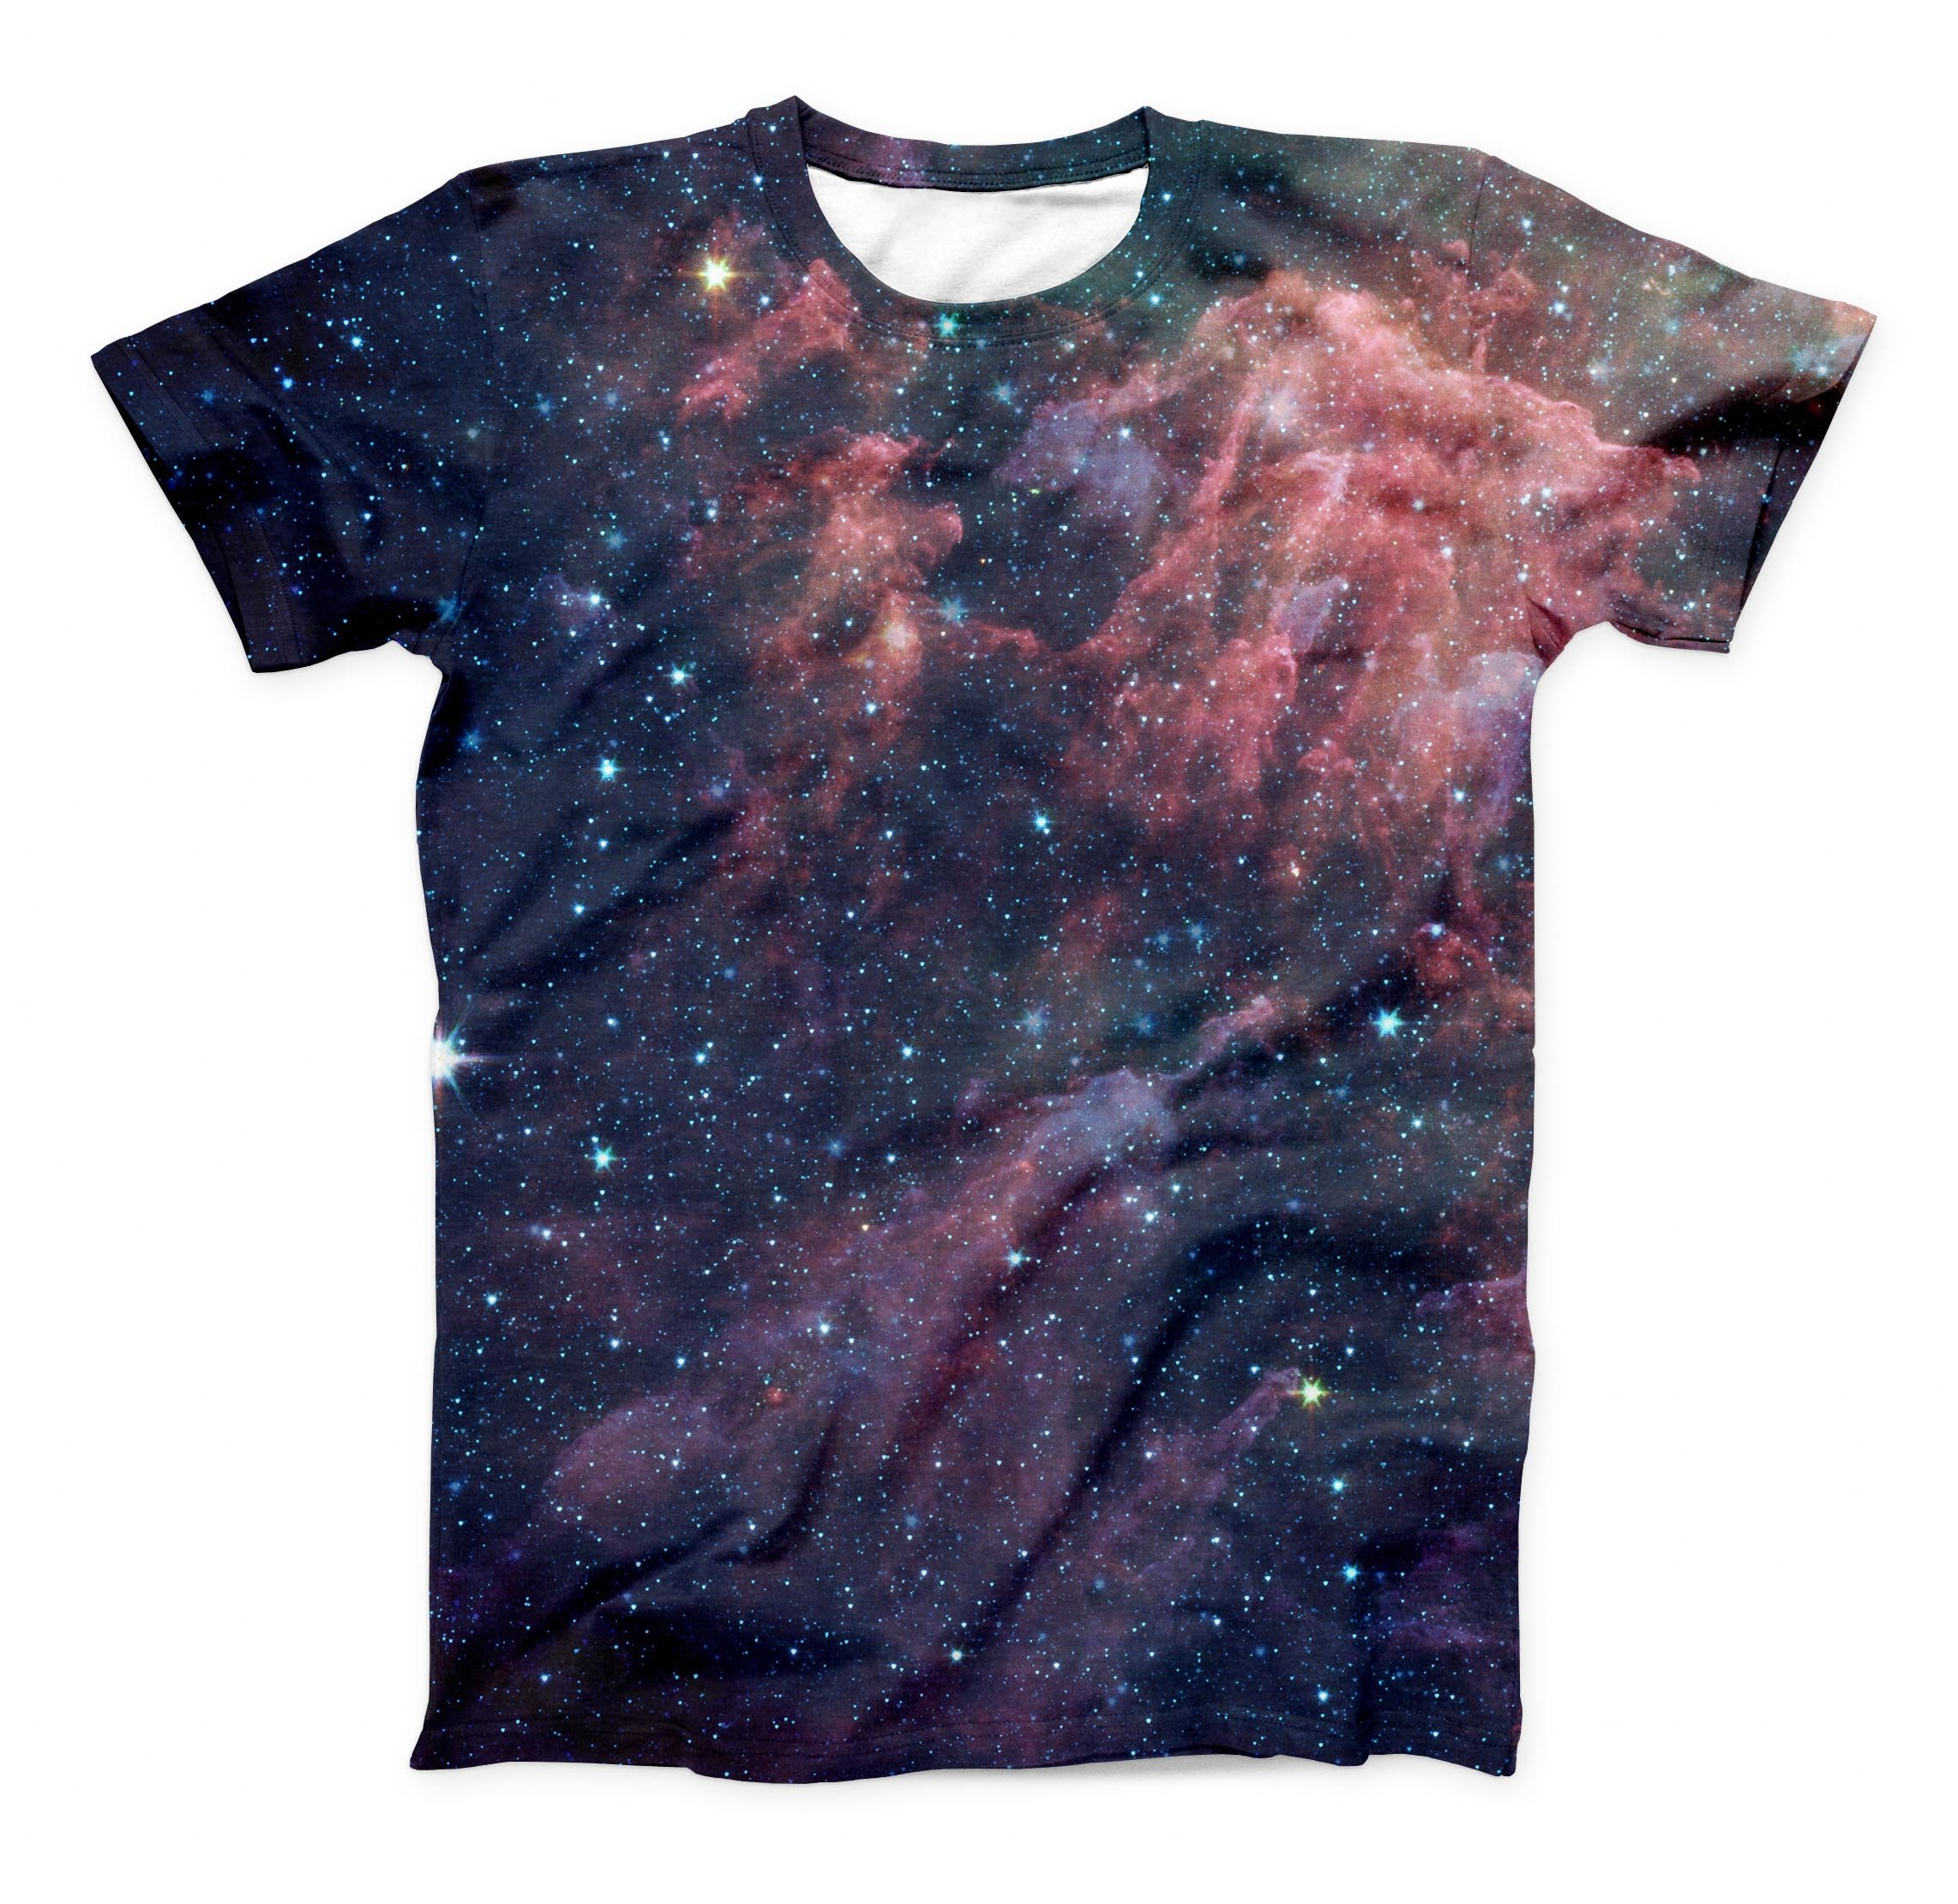 Image of The Colorful Deep Space Nebula ink-Fuzed Unisex All Over Full-Printed Fitted Tee Shirt